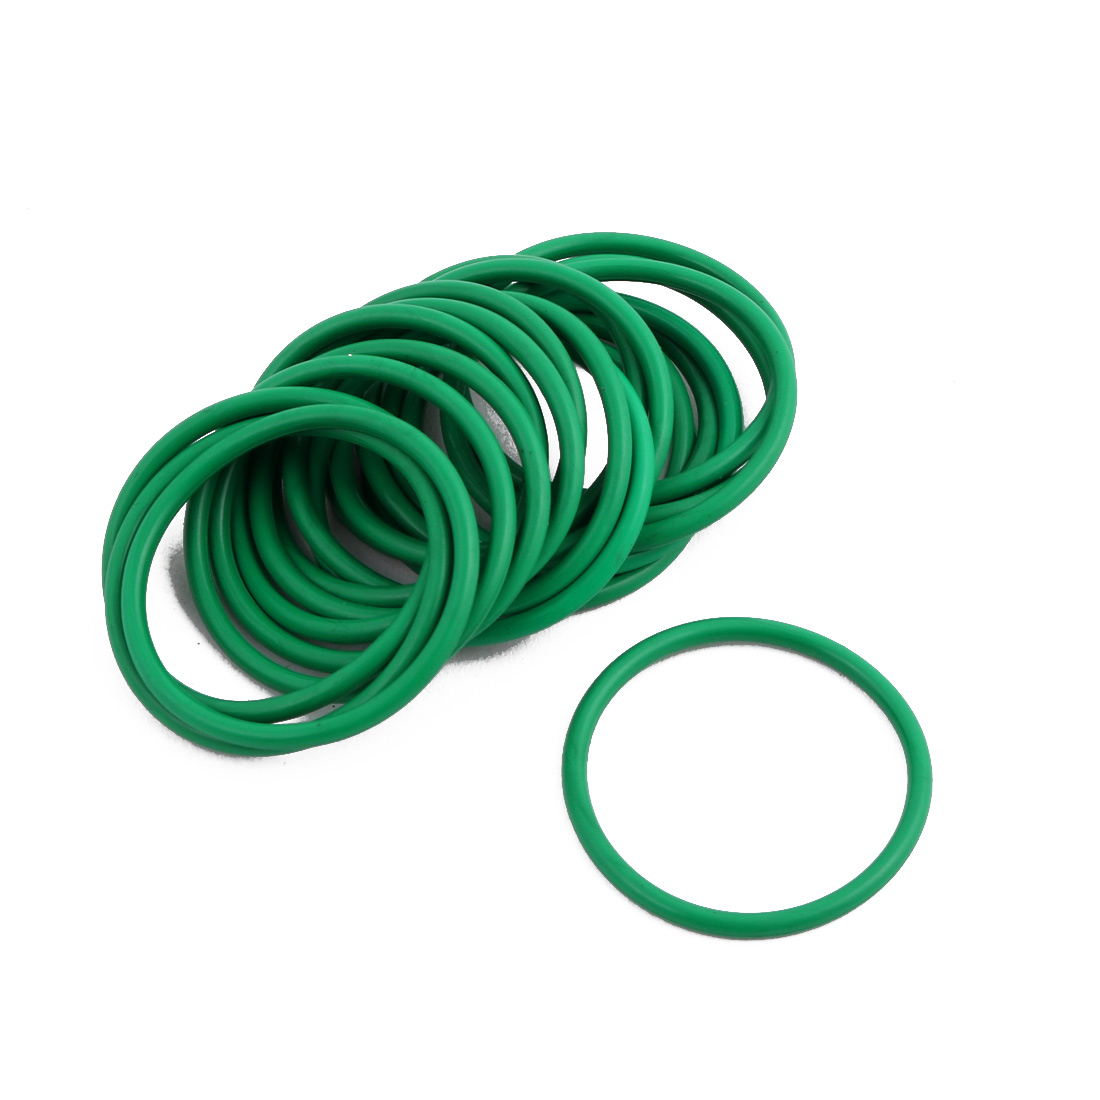 20Pcs Green 28 x 1.9mm Industrial Flexible Rubber O Ring Oil Sealing Grommets